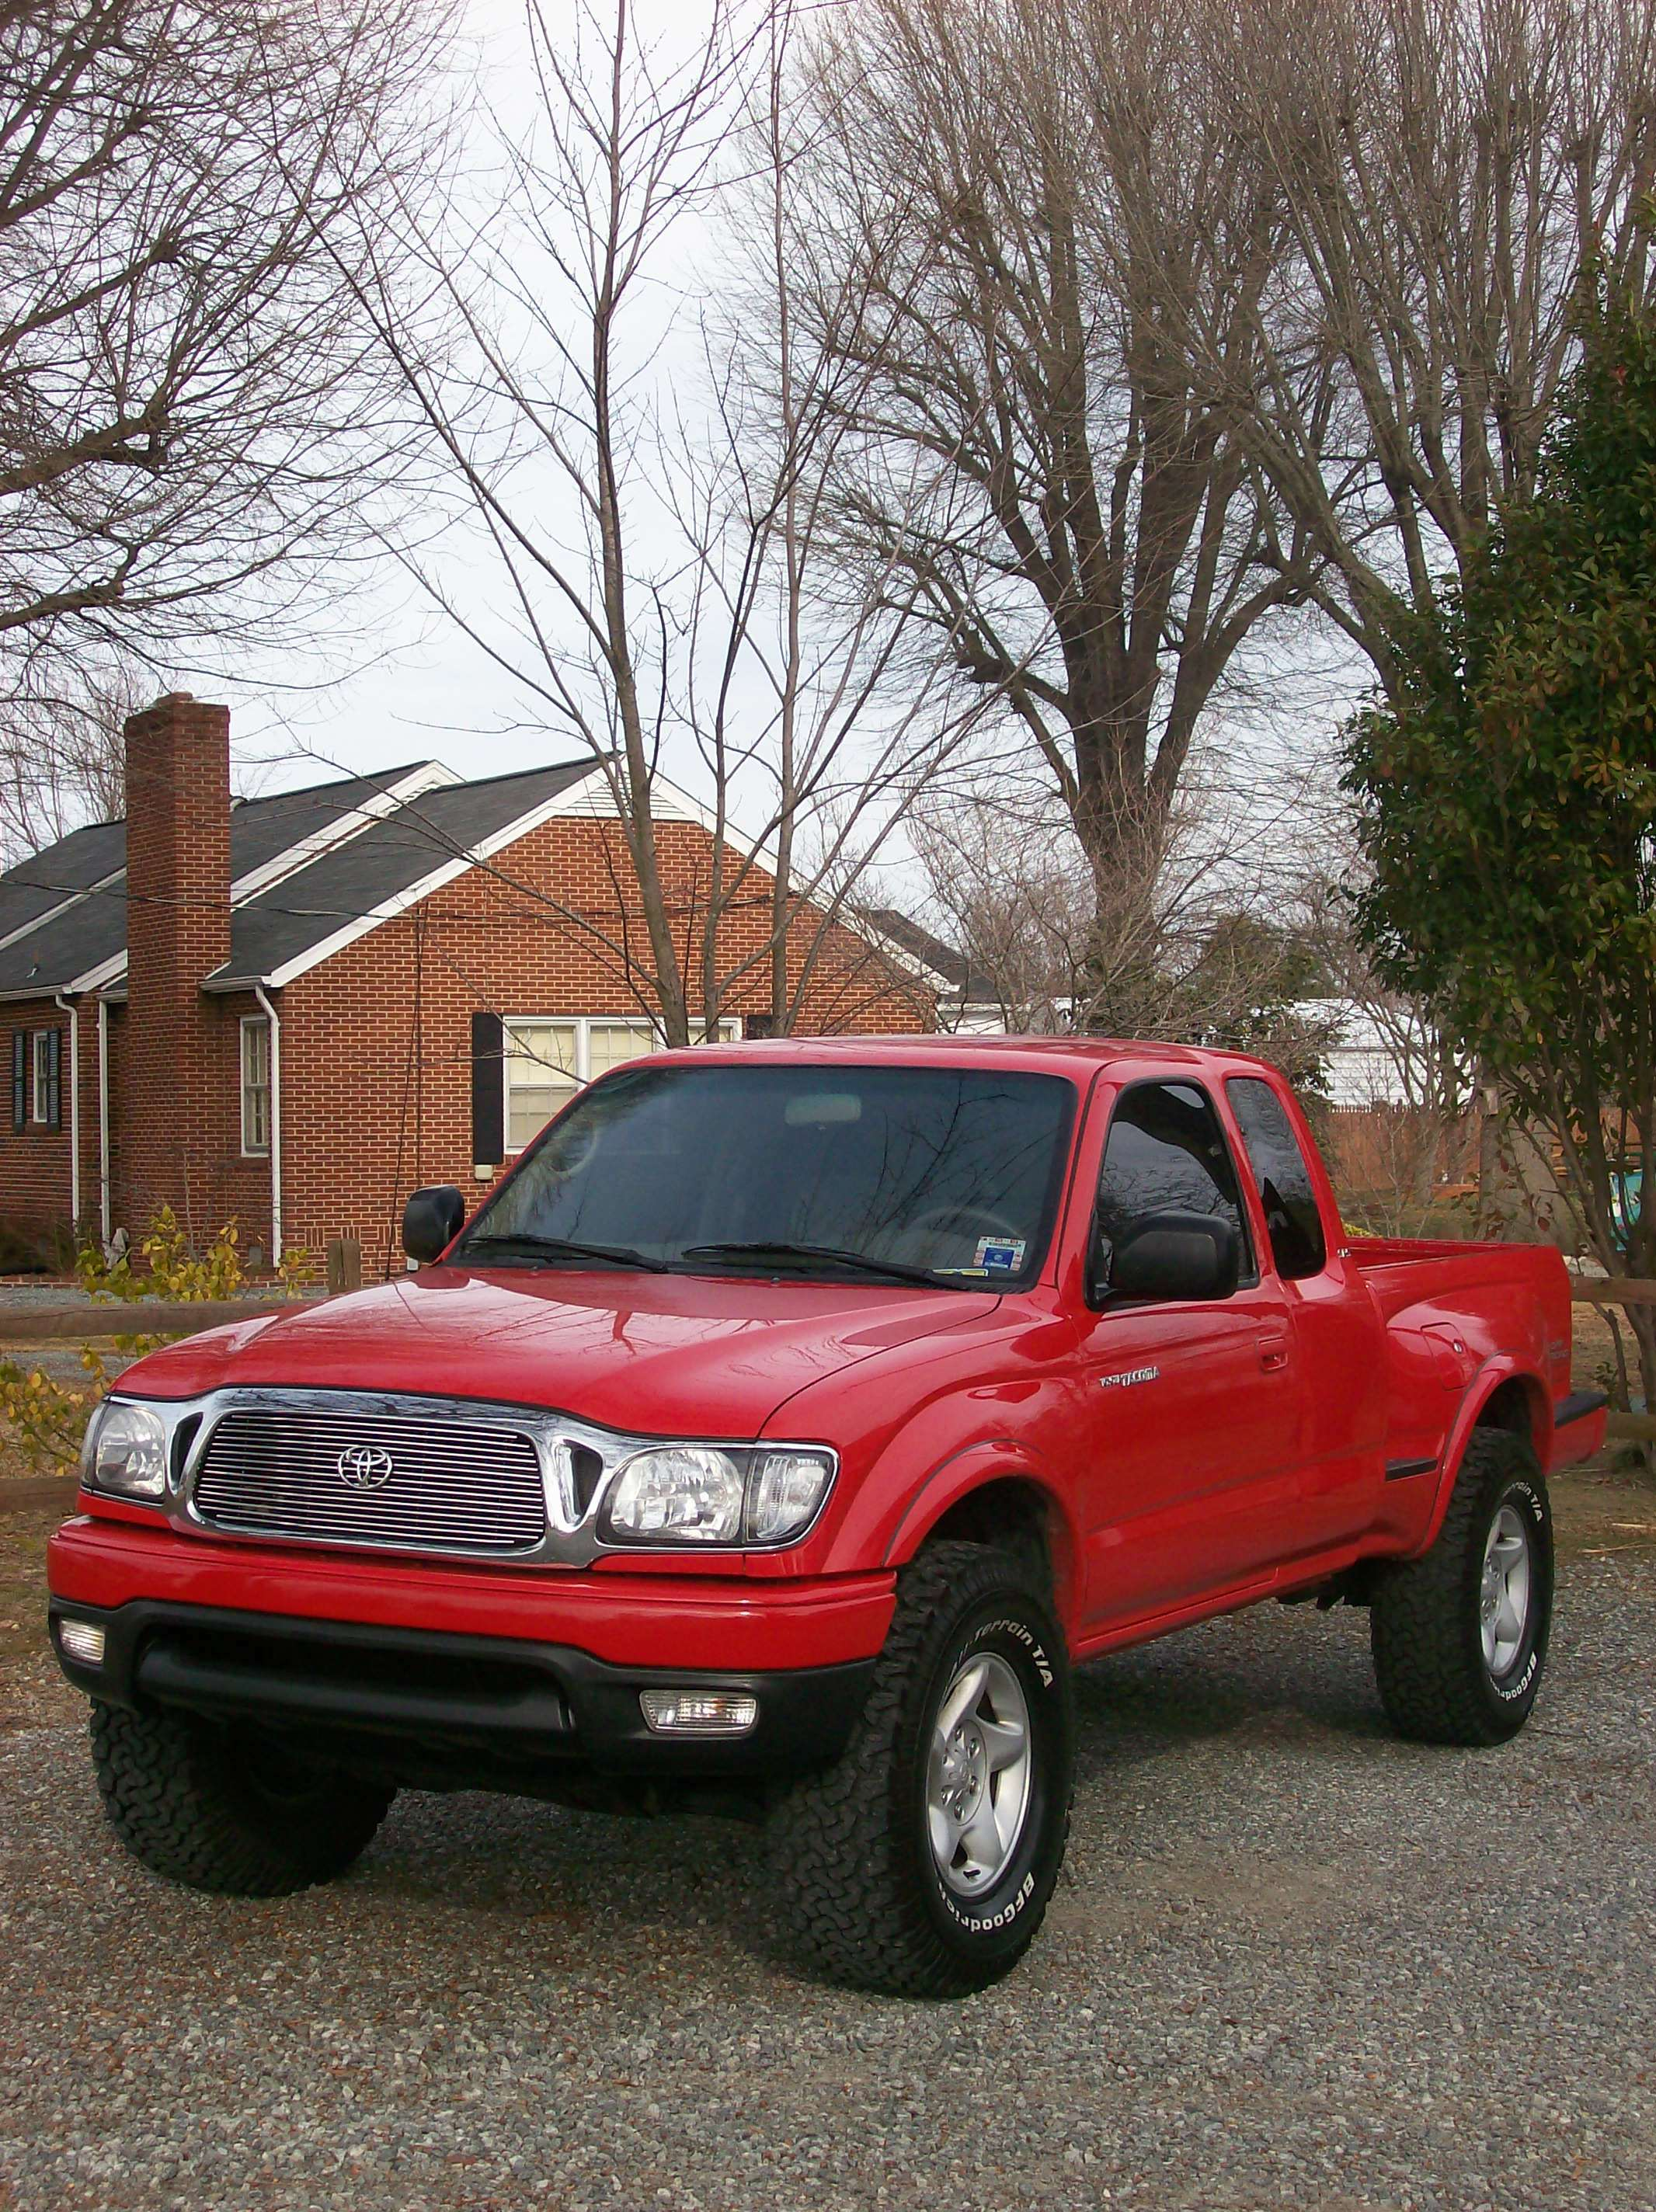 jbtoyotatacoma 2002 toyota tacoma xtra cab specs photos modification info at cardomain. Black Bedroom Furniture Sets. Home Design Ideas